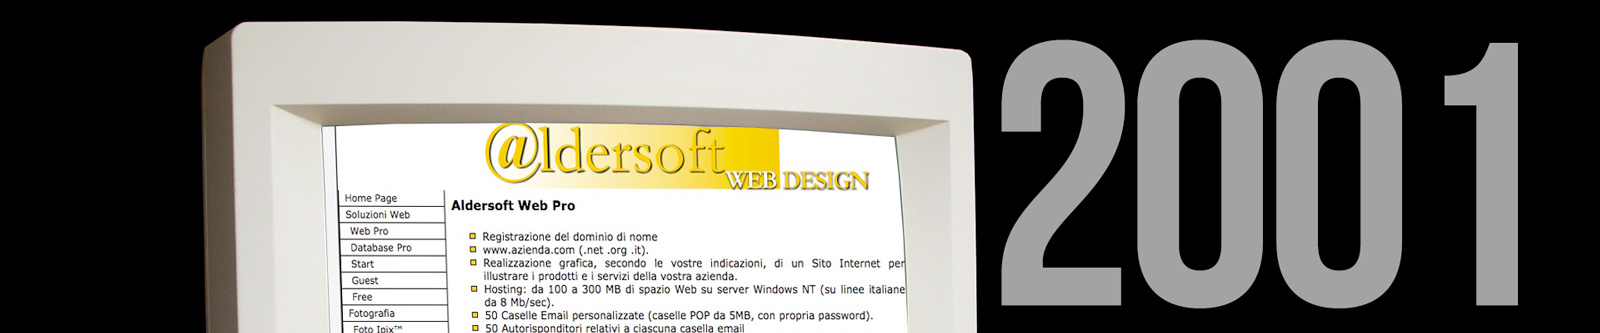 Web Agency in Genova | Professional websites | SEO experts in Italy